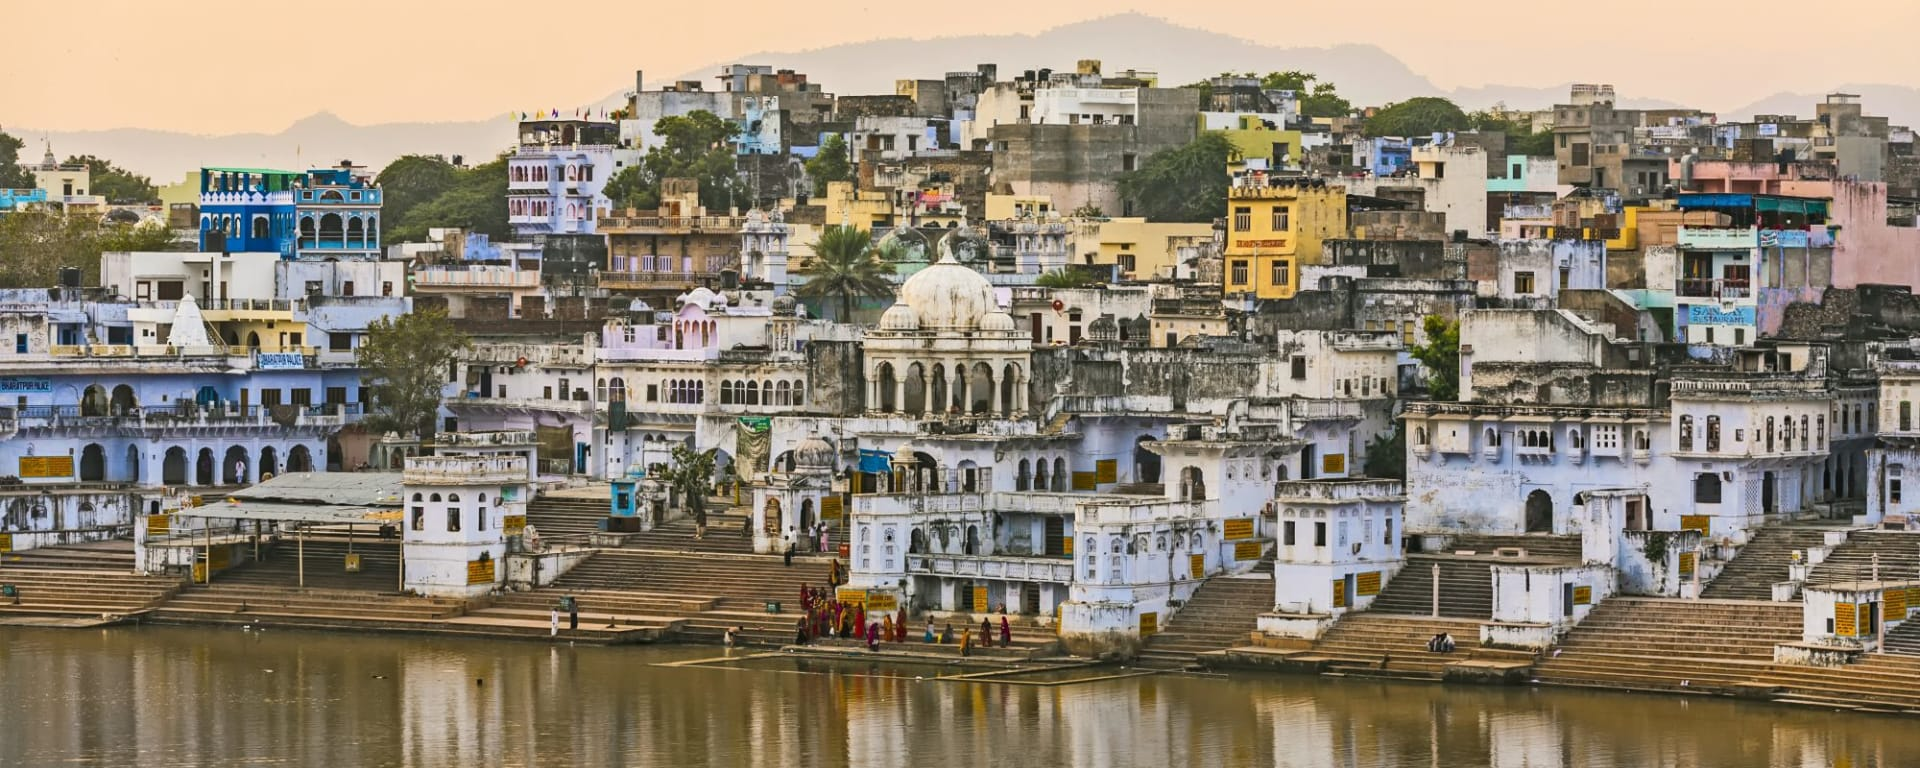 Wissenswertes zu Indien Reisen und Ferien: Pushkar with ghats and lake